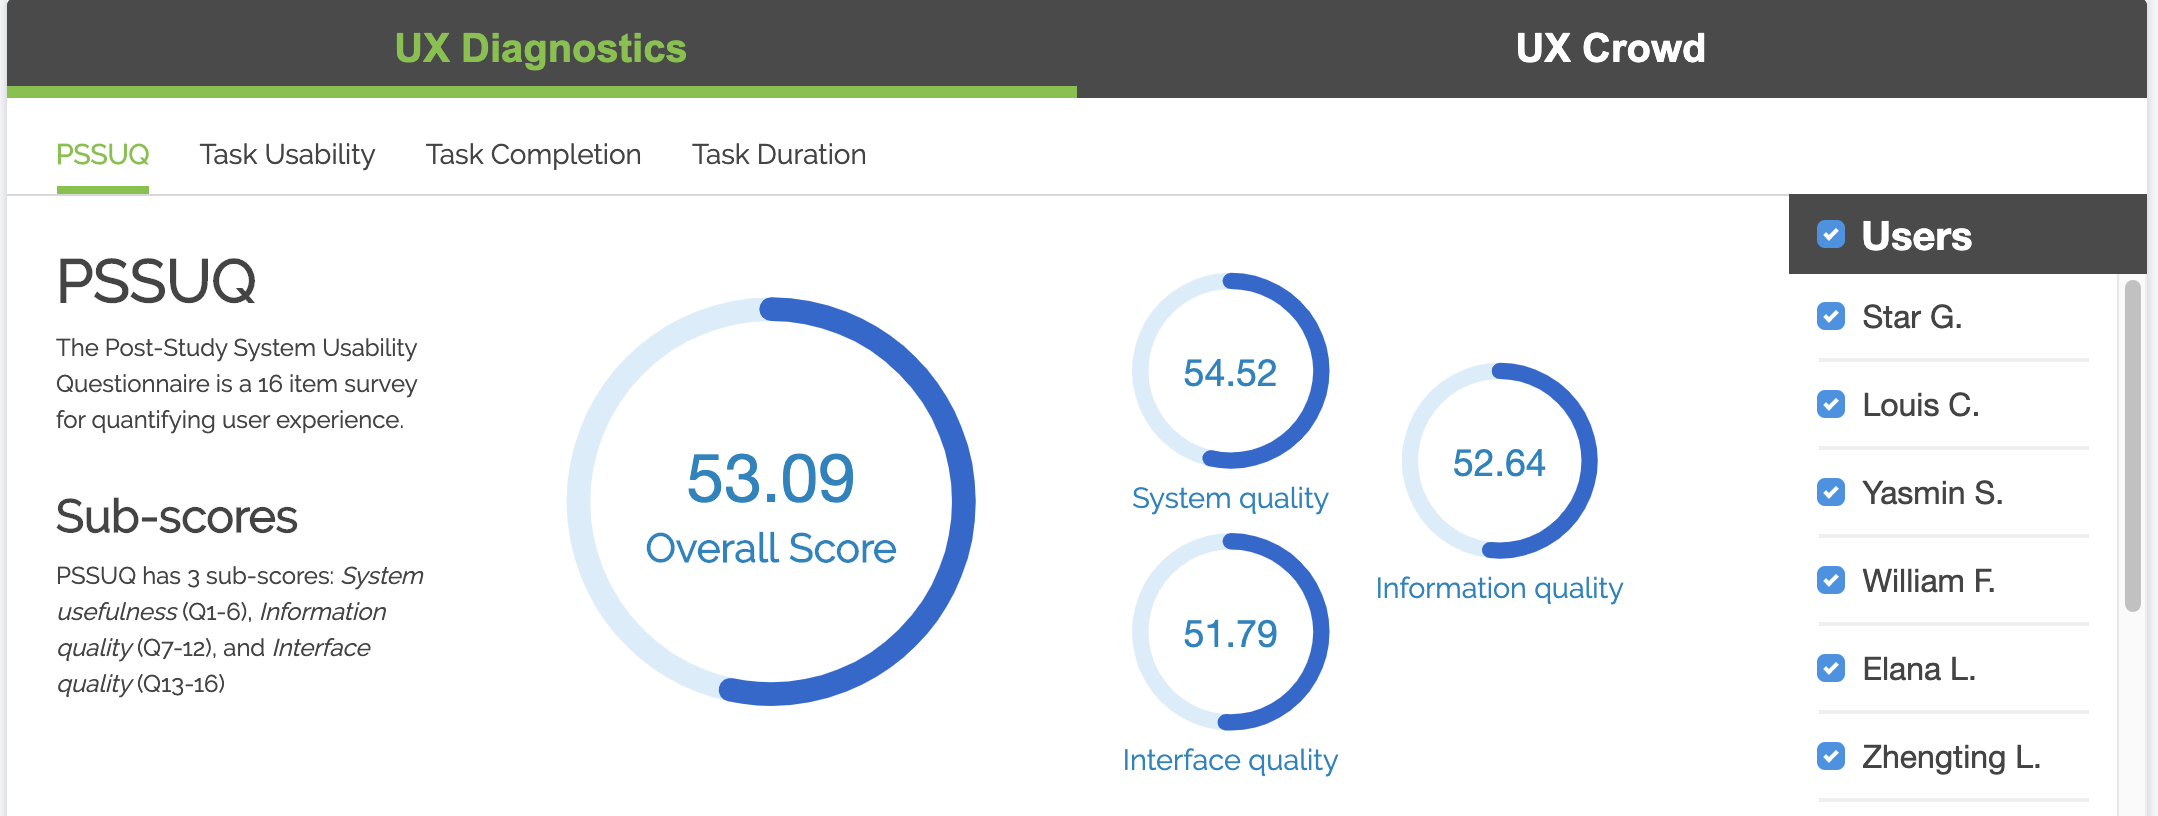 Screenshot of the TryMyUI usability testing platform UX diagnostics dashboard displaying the PSSUQ psychometric